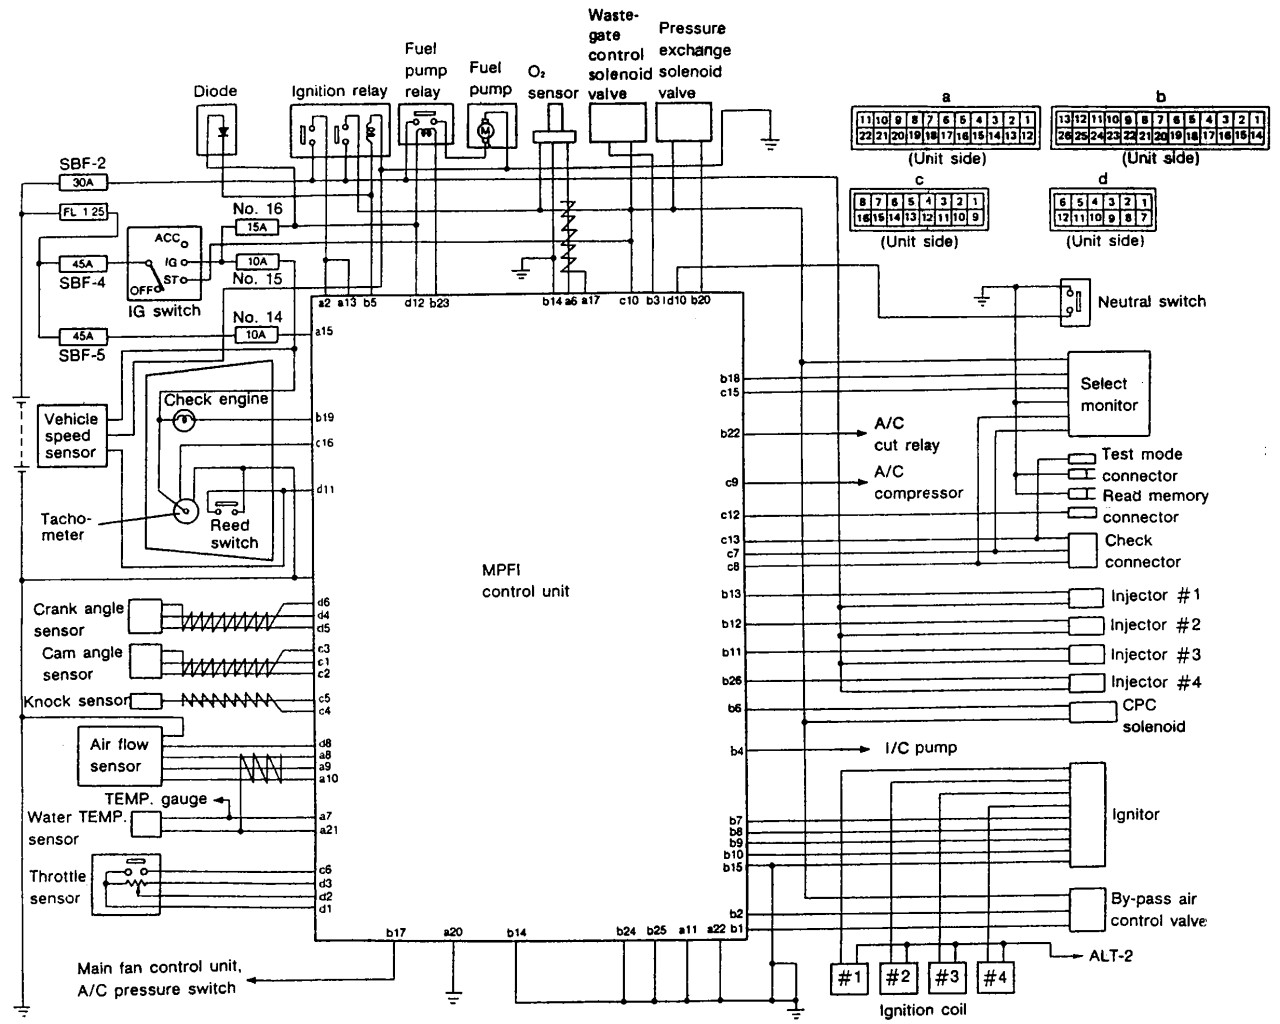 2003 Jeep Liberty Wiring Diagram Wiring Diagrams Register Register Miglioribanche It